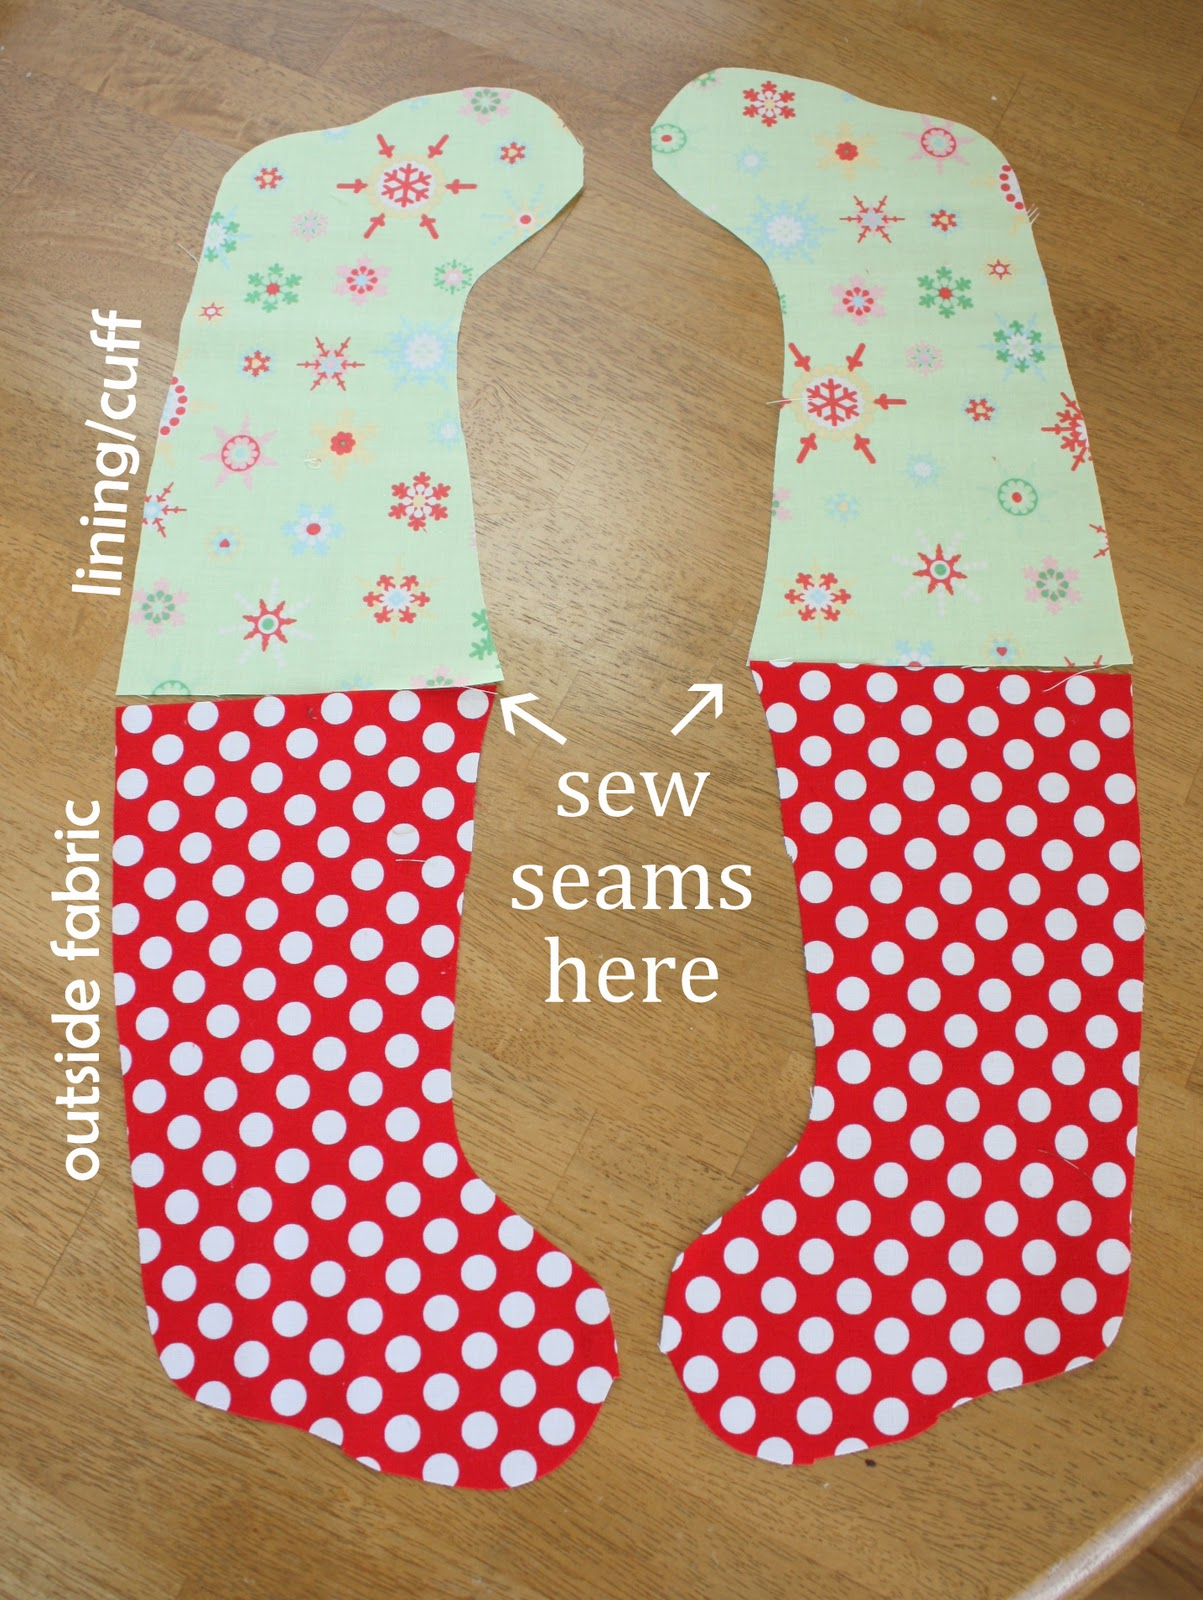 Easy diy stocking tutorial now pair up one outside fabric with one liningcuff fabric with the toes pointing the same direction like this see picture above jeuxipadfo Gallery